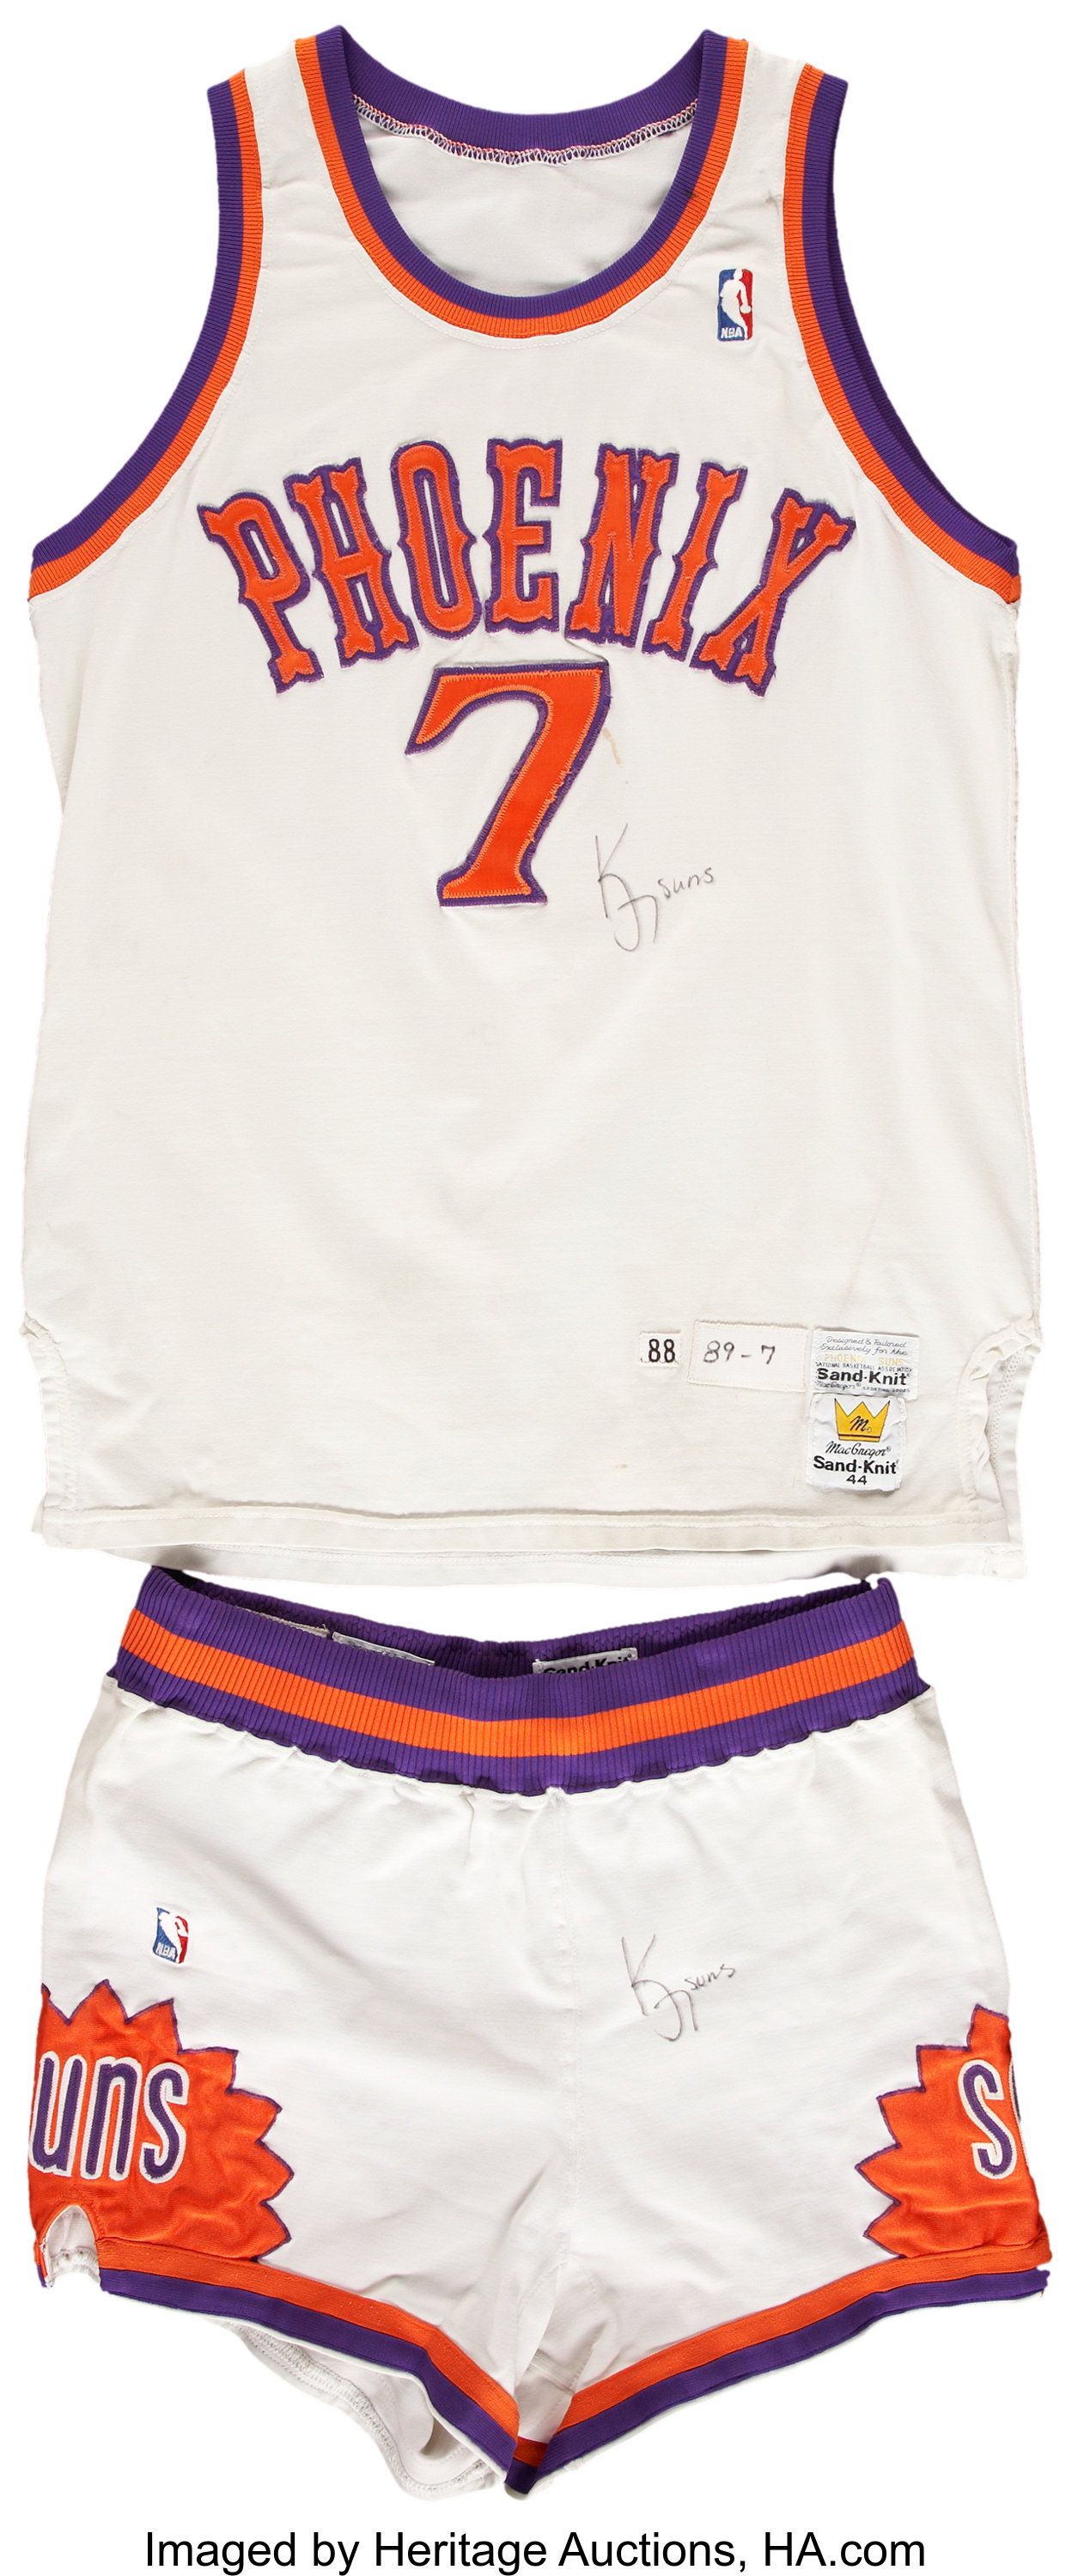 1988-89 Kevin Johnson Phoenix Suns Game Used Jersey and Shorts ...